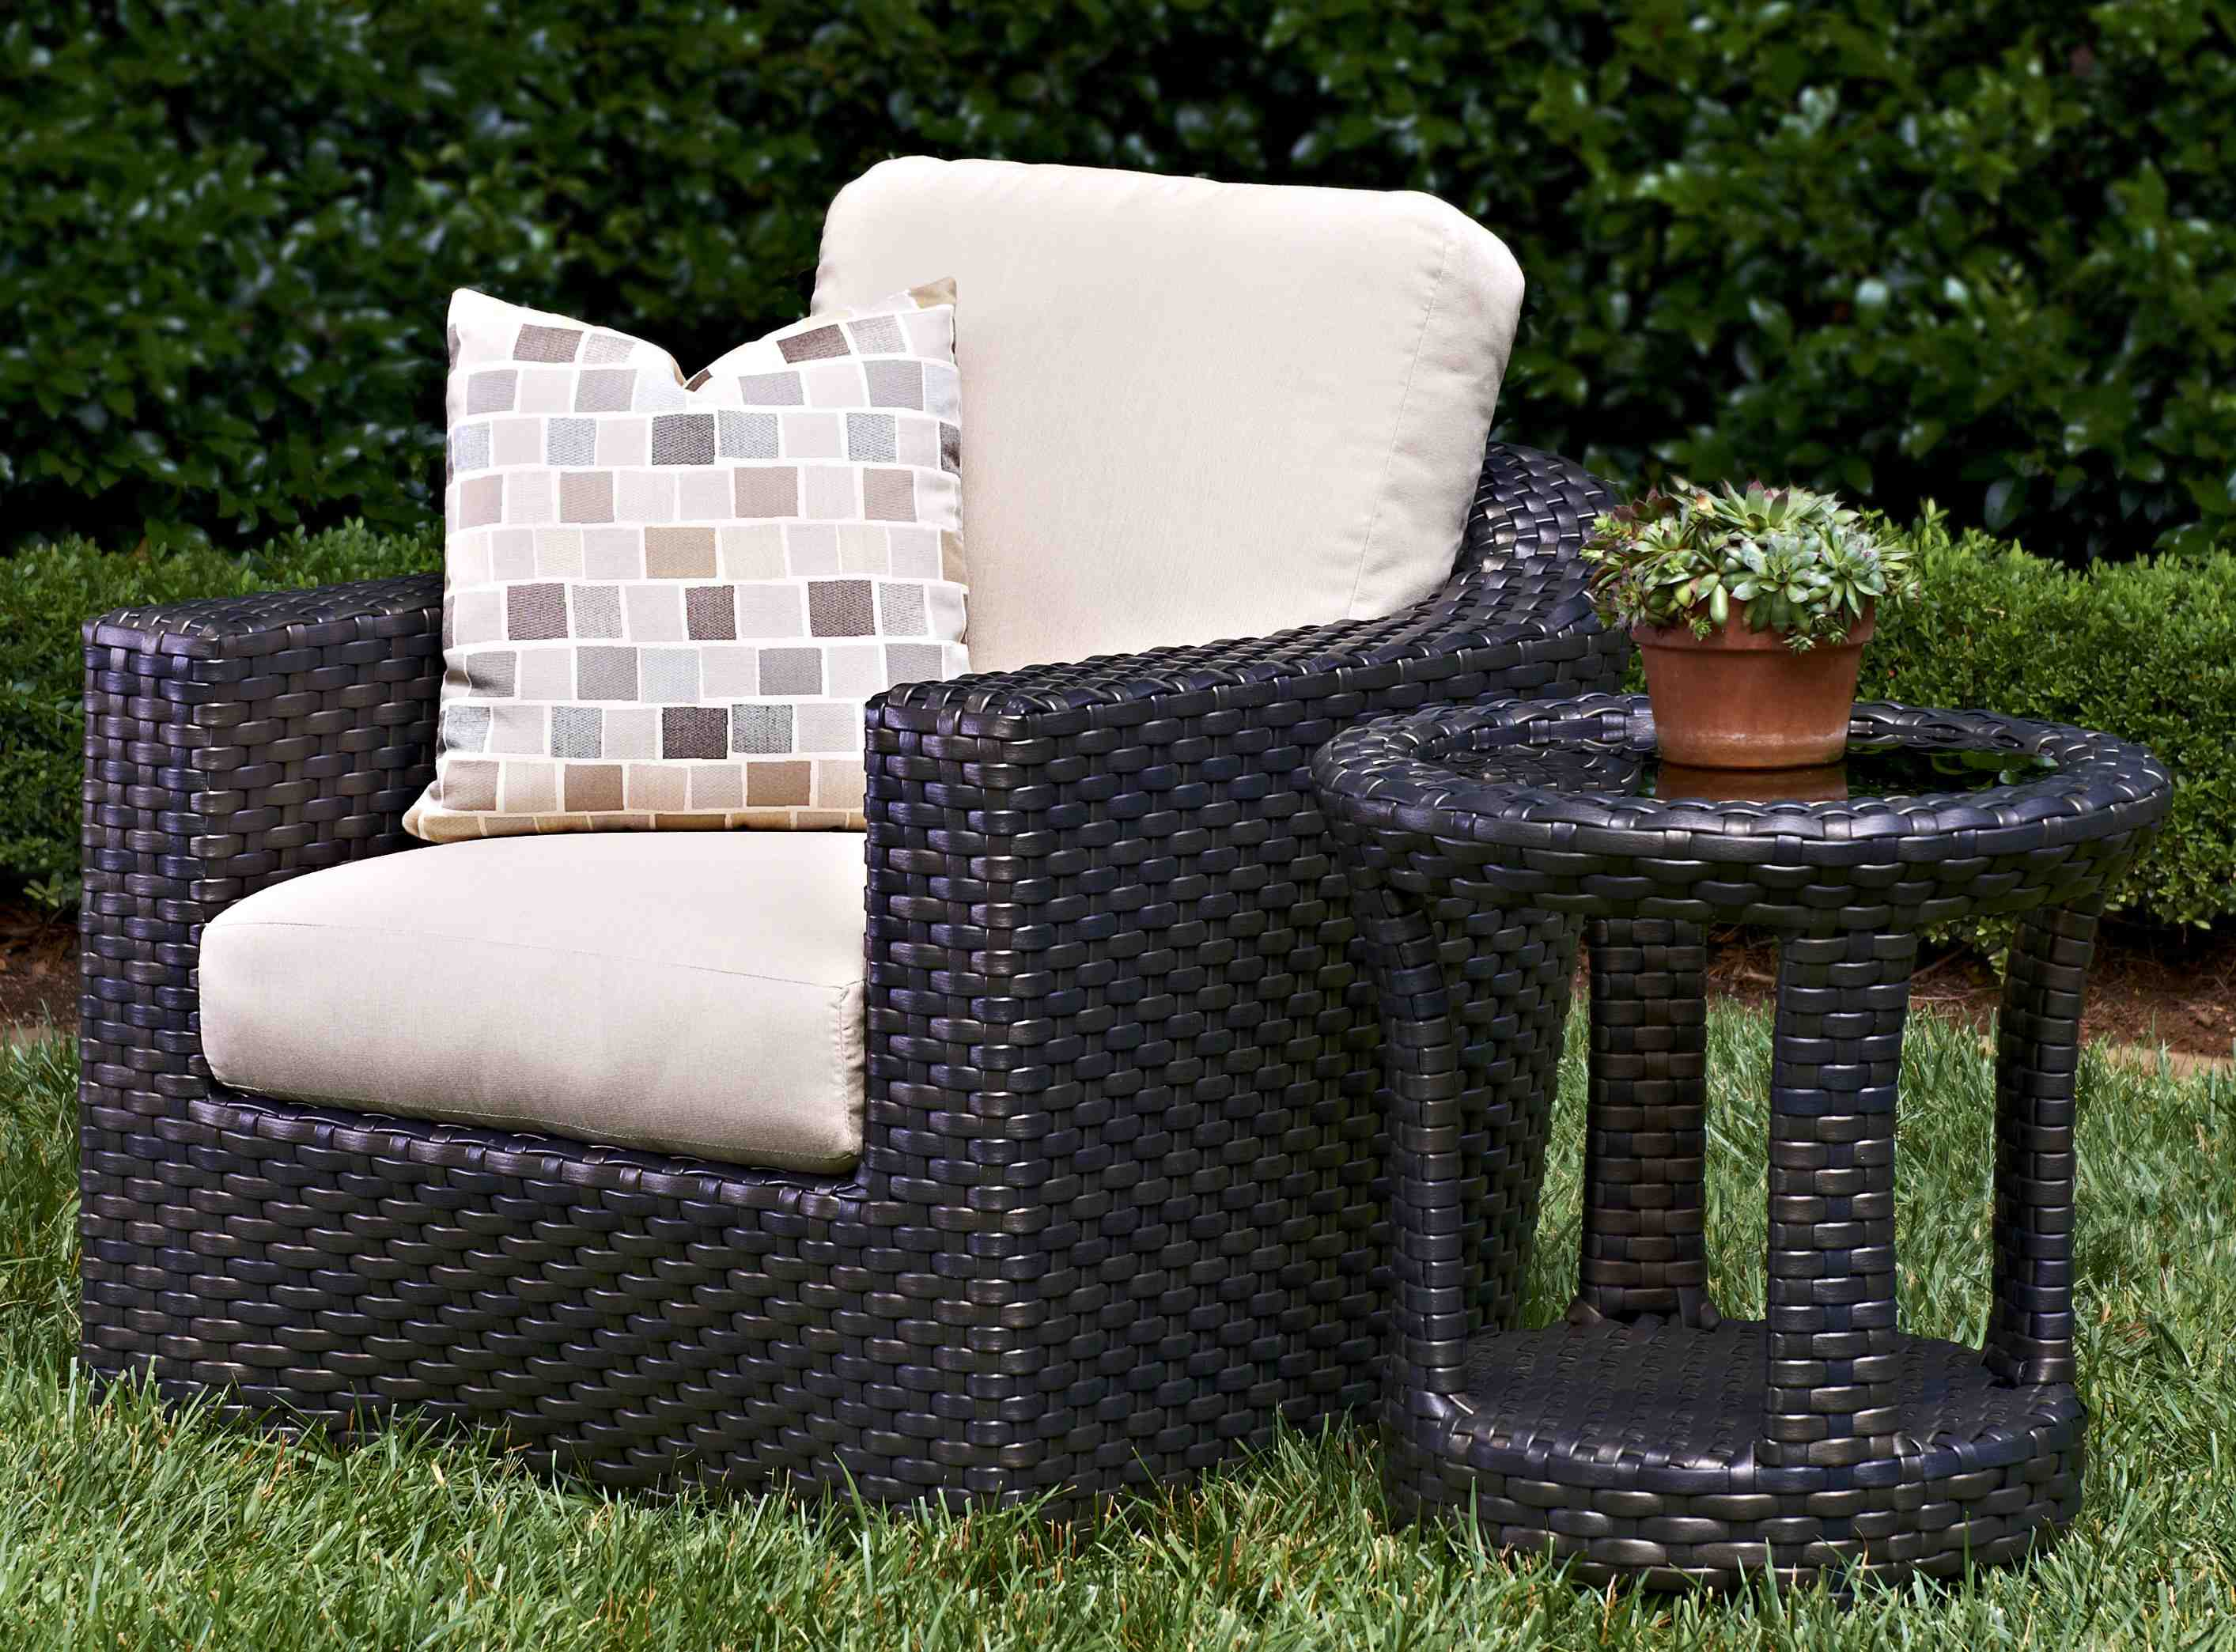 Klaussner Home Furnishings Will Debut Its New Outdoor Living Category This September At The Icfa